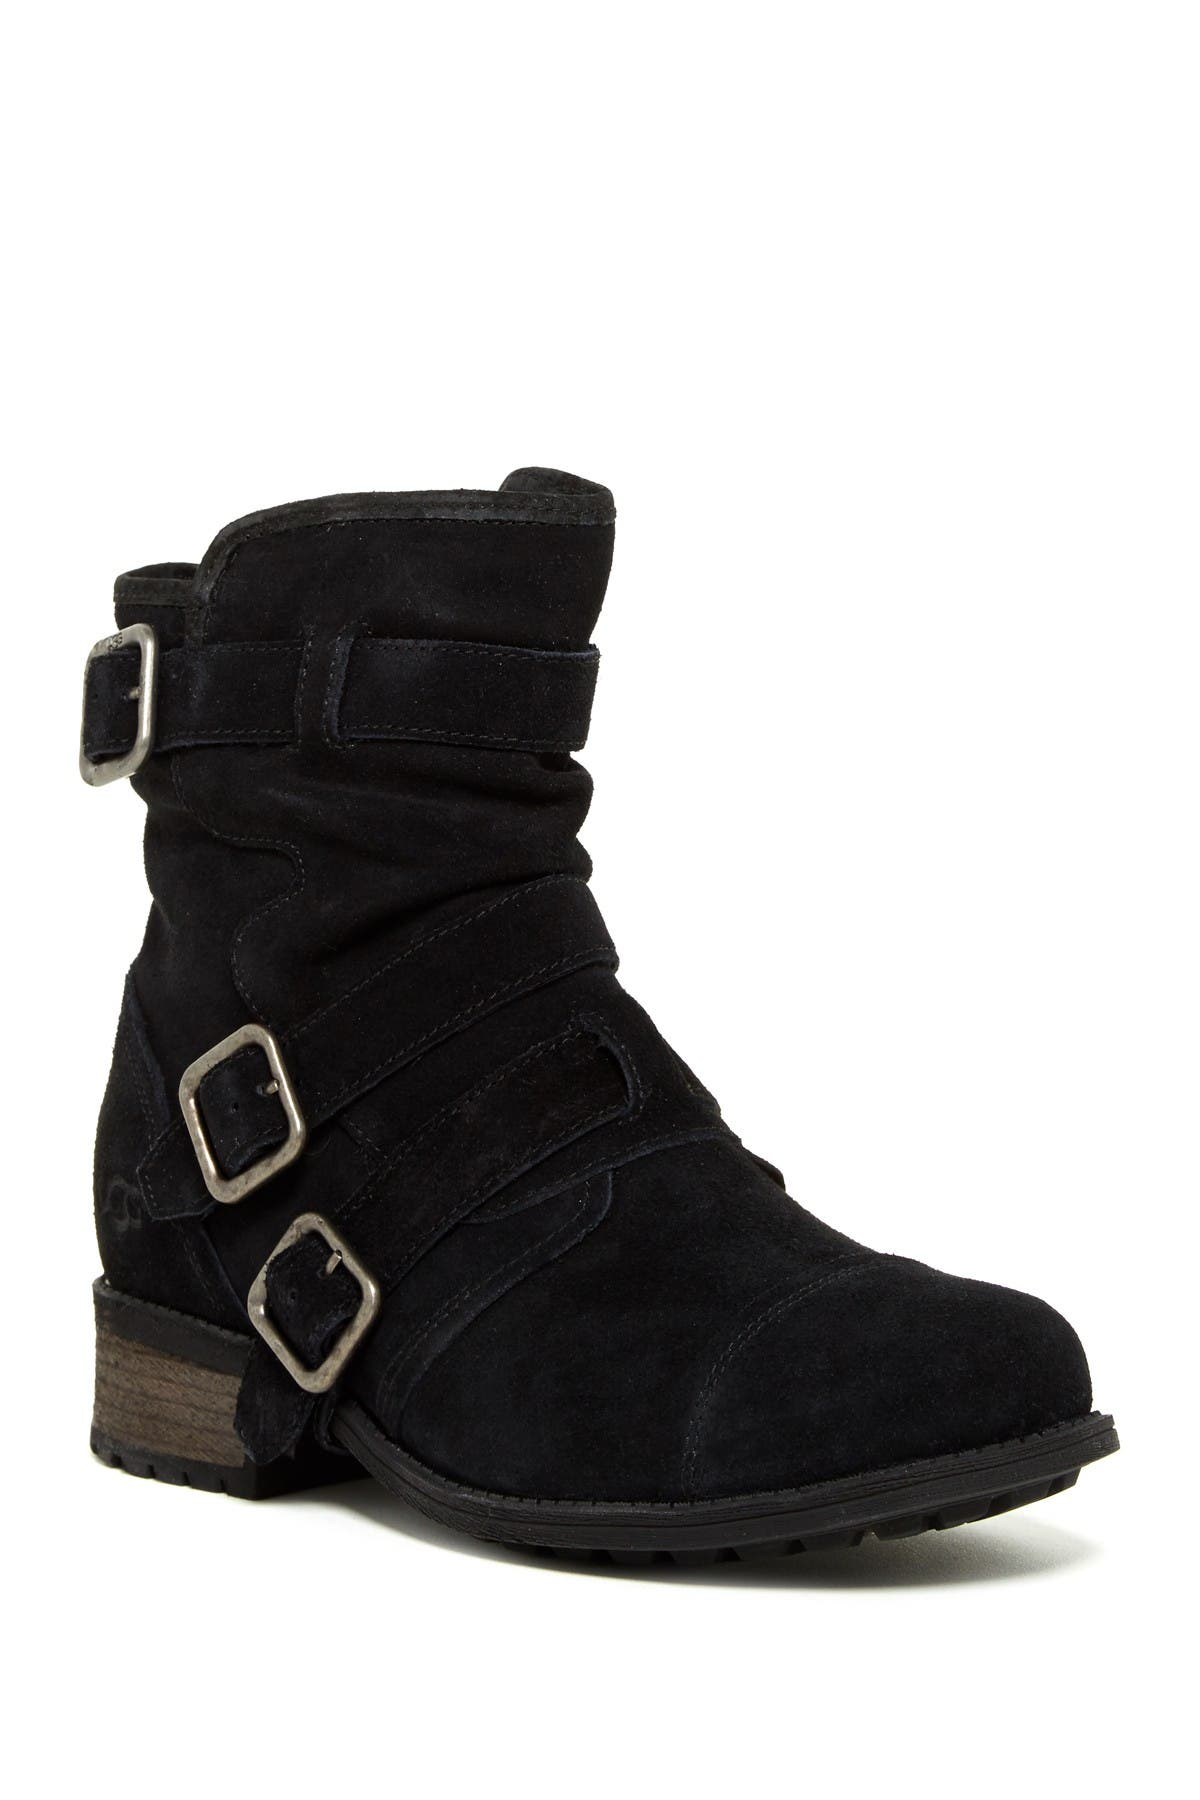 Image of UGG Finney Boot